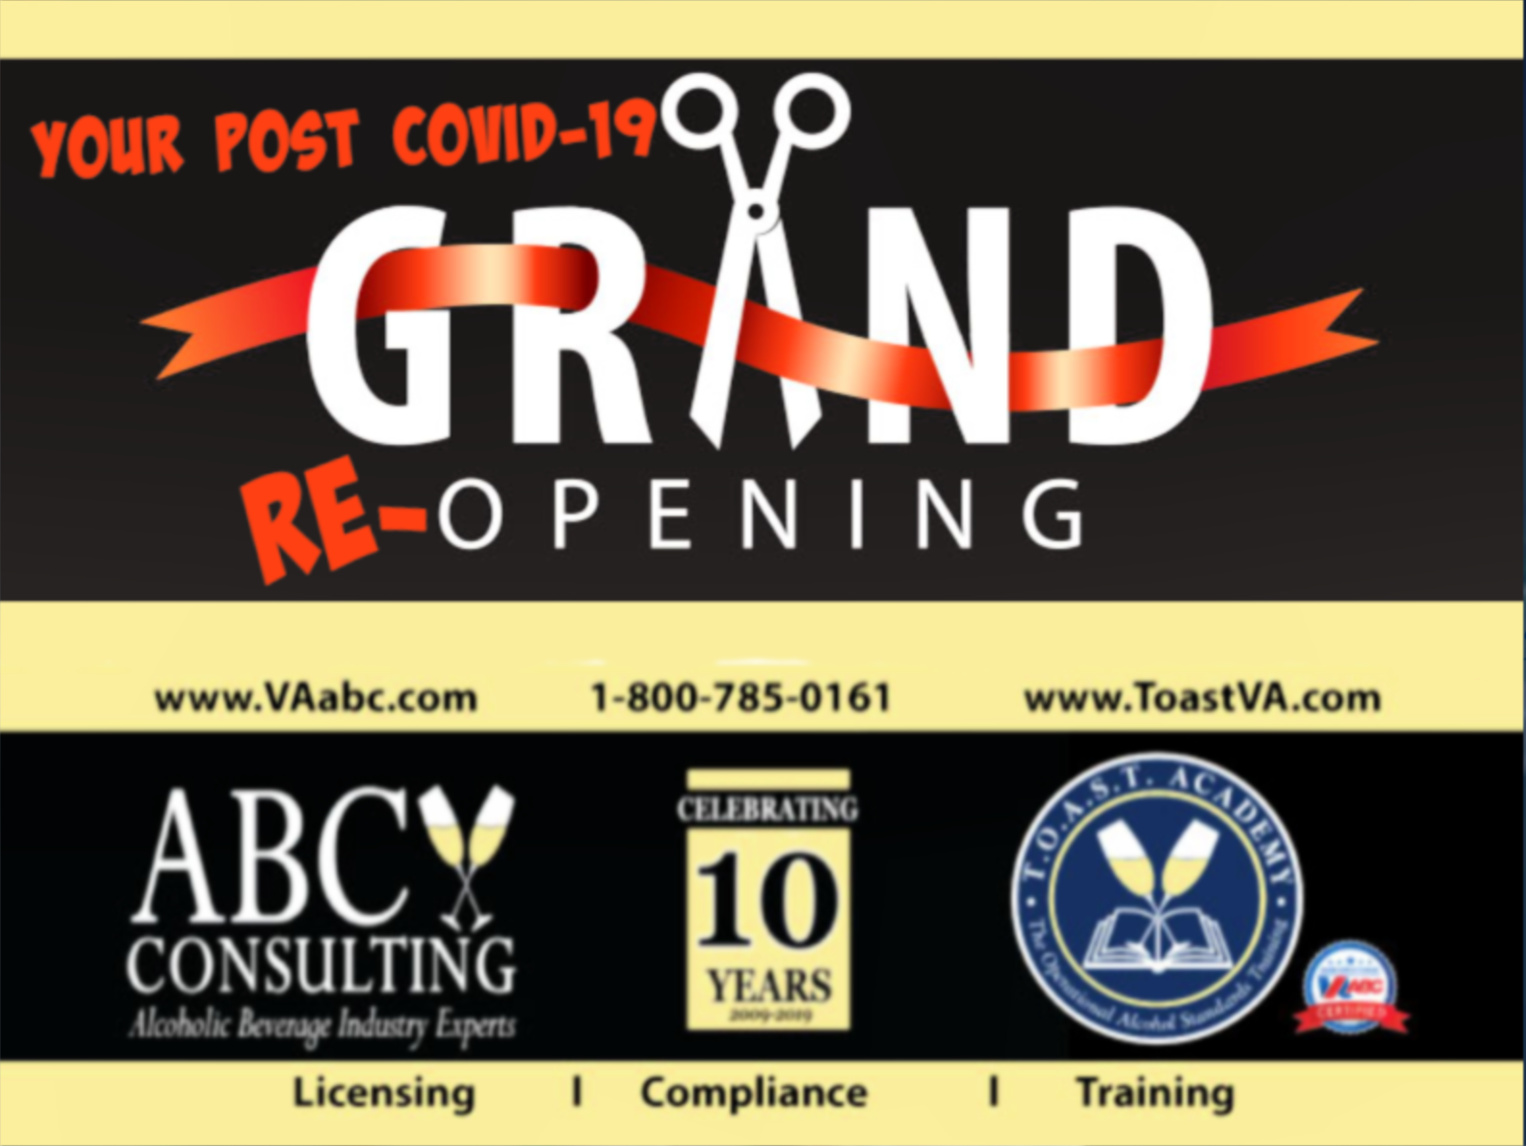 COVID-19 re-opening ABC